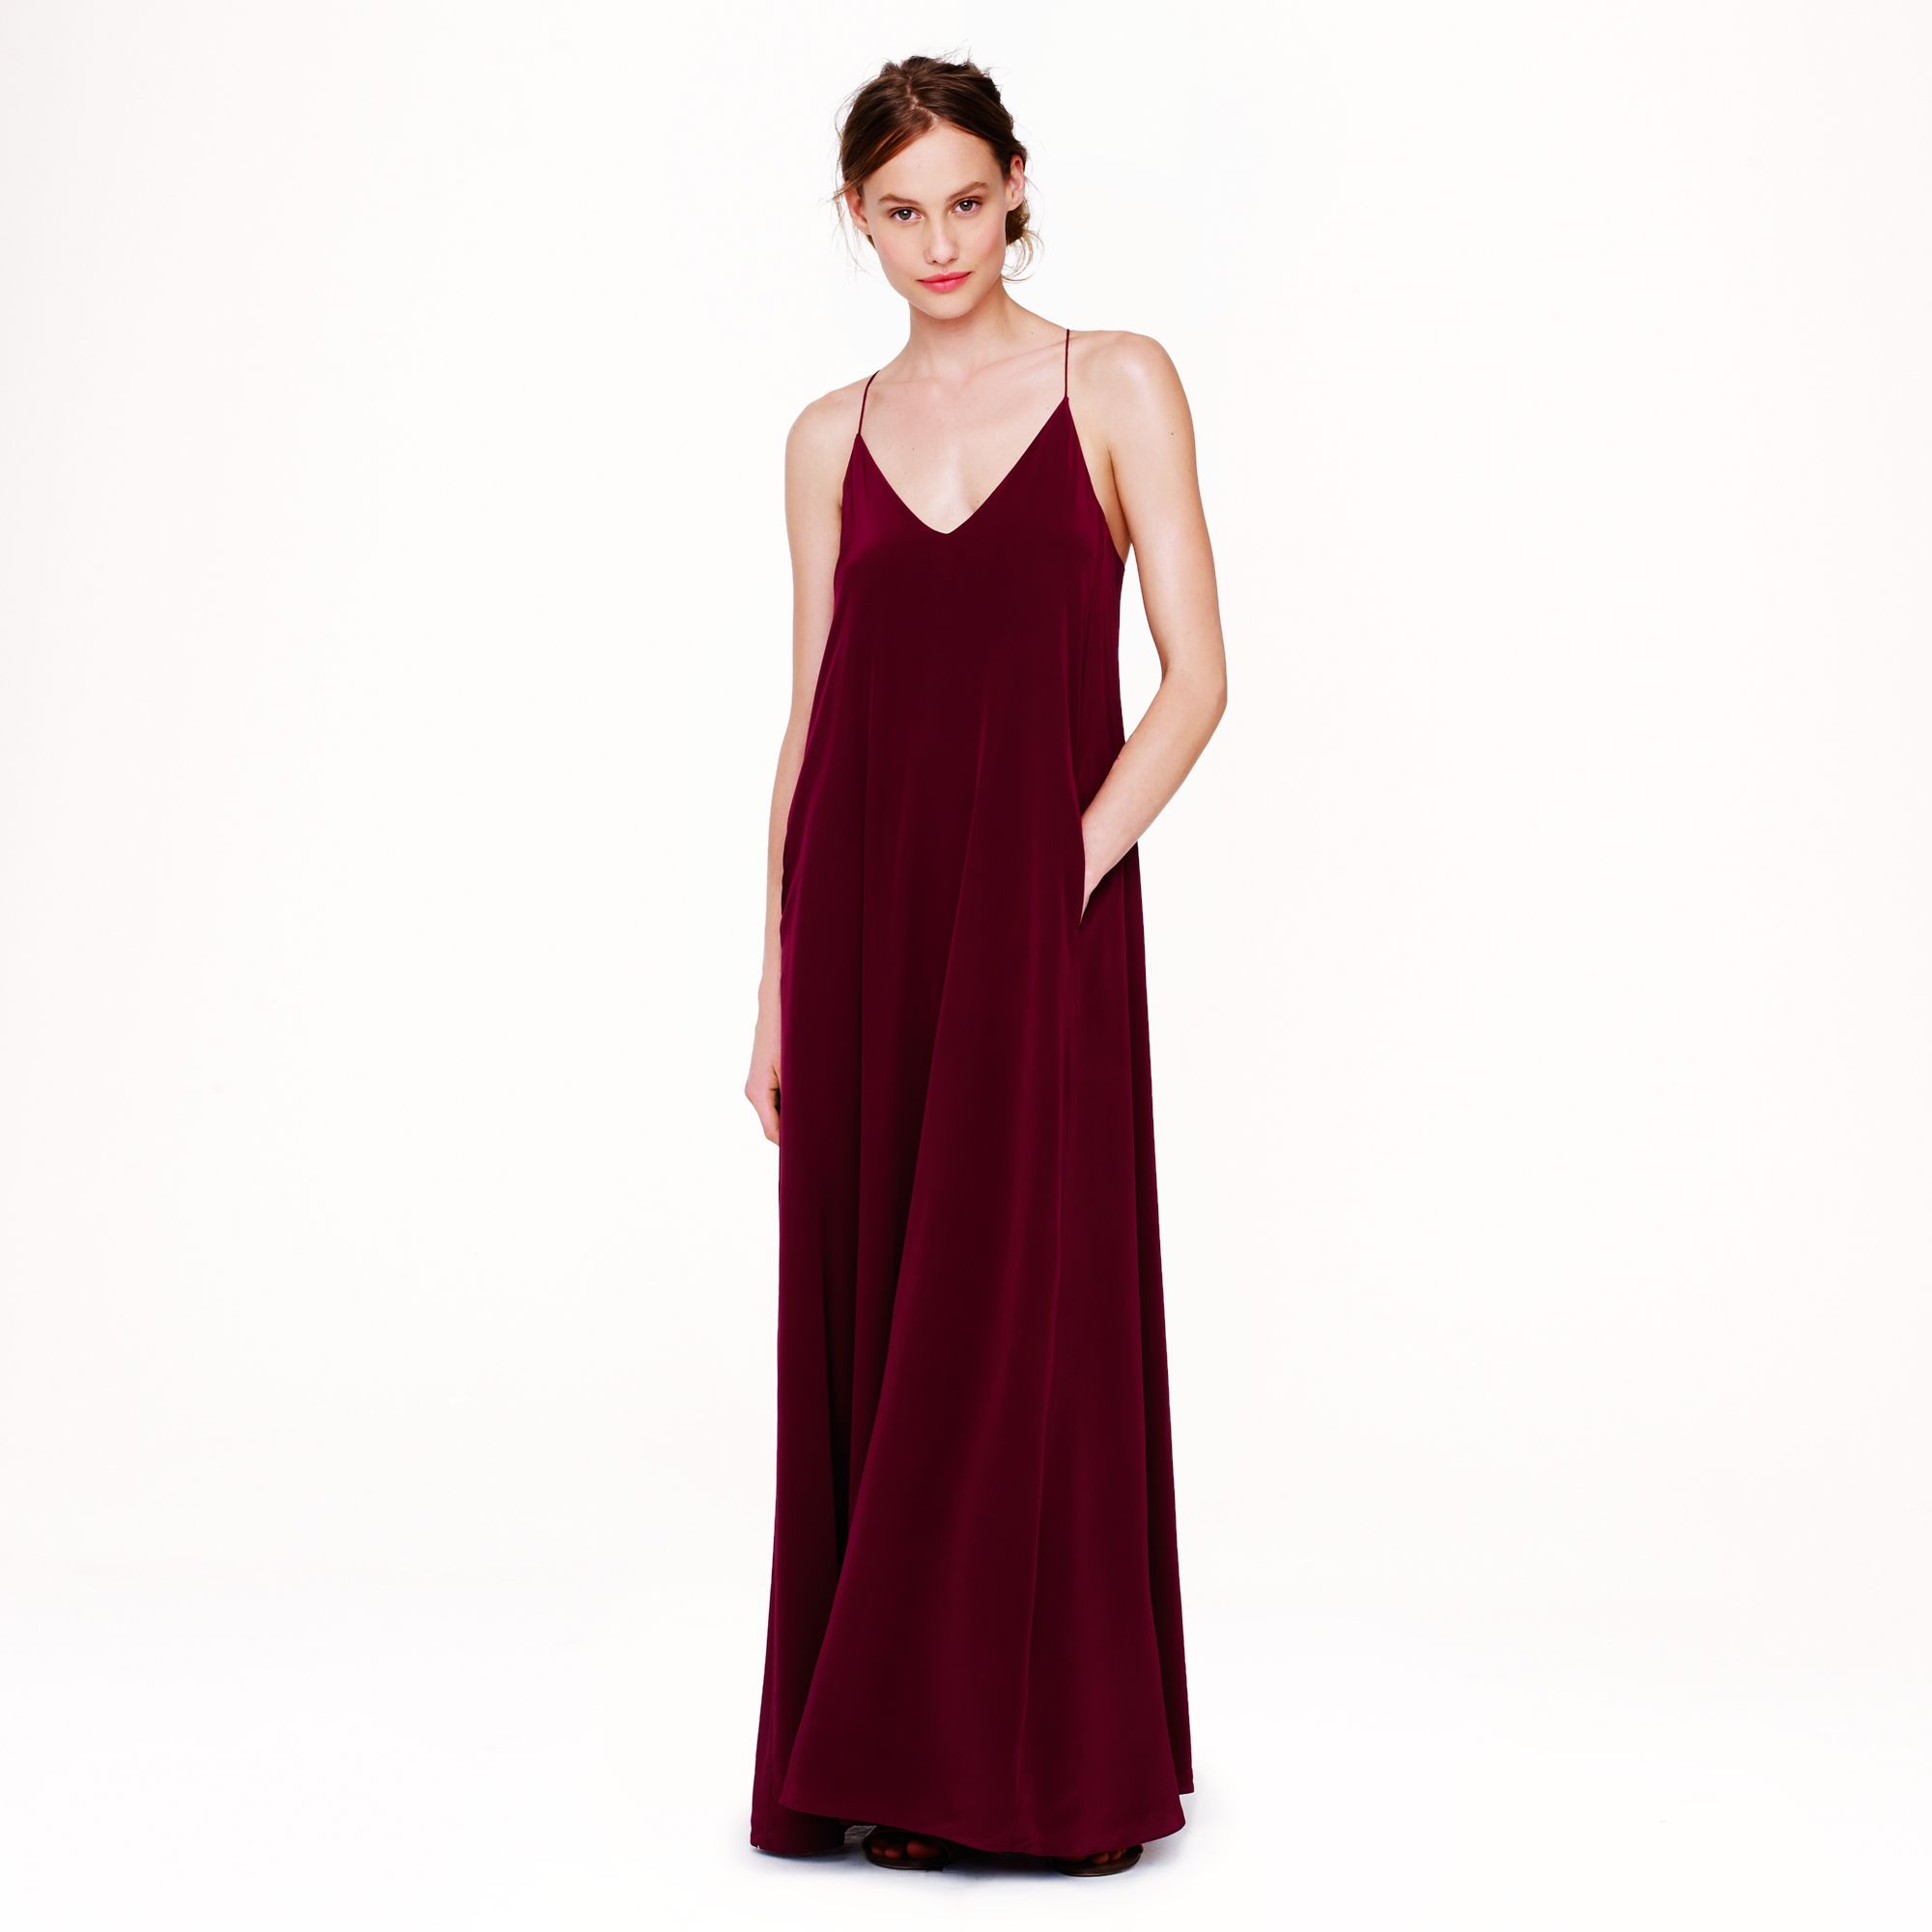 Maxi Dresses. Maxi Dresses are an essential part of any woman's wardrobe, and THE ICONIC has a style to suit everybody. Look to bold, bright prints for an eye-catching statement, or keep things classic with block colours. THE ICONIC boasts an impressive selection of maxi dresses from renowned Australian and international designers.